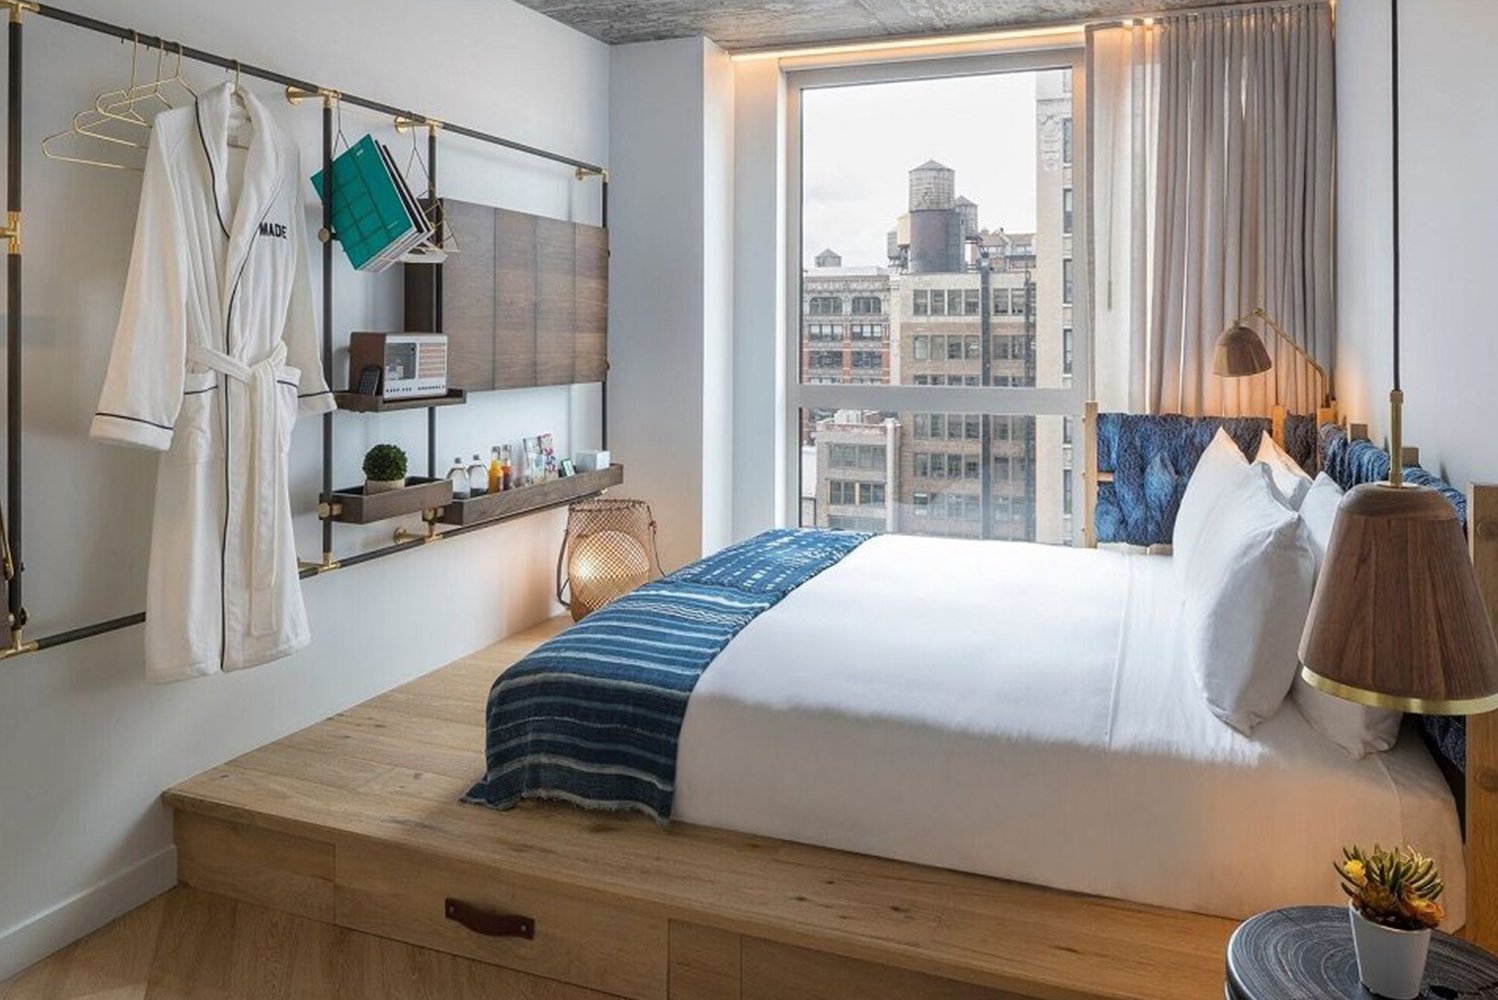 Studio MAI designed the guestrooms with an urban international design aesthetic.